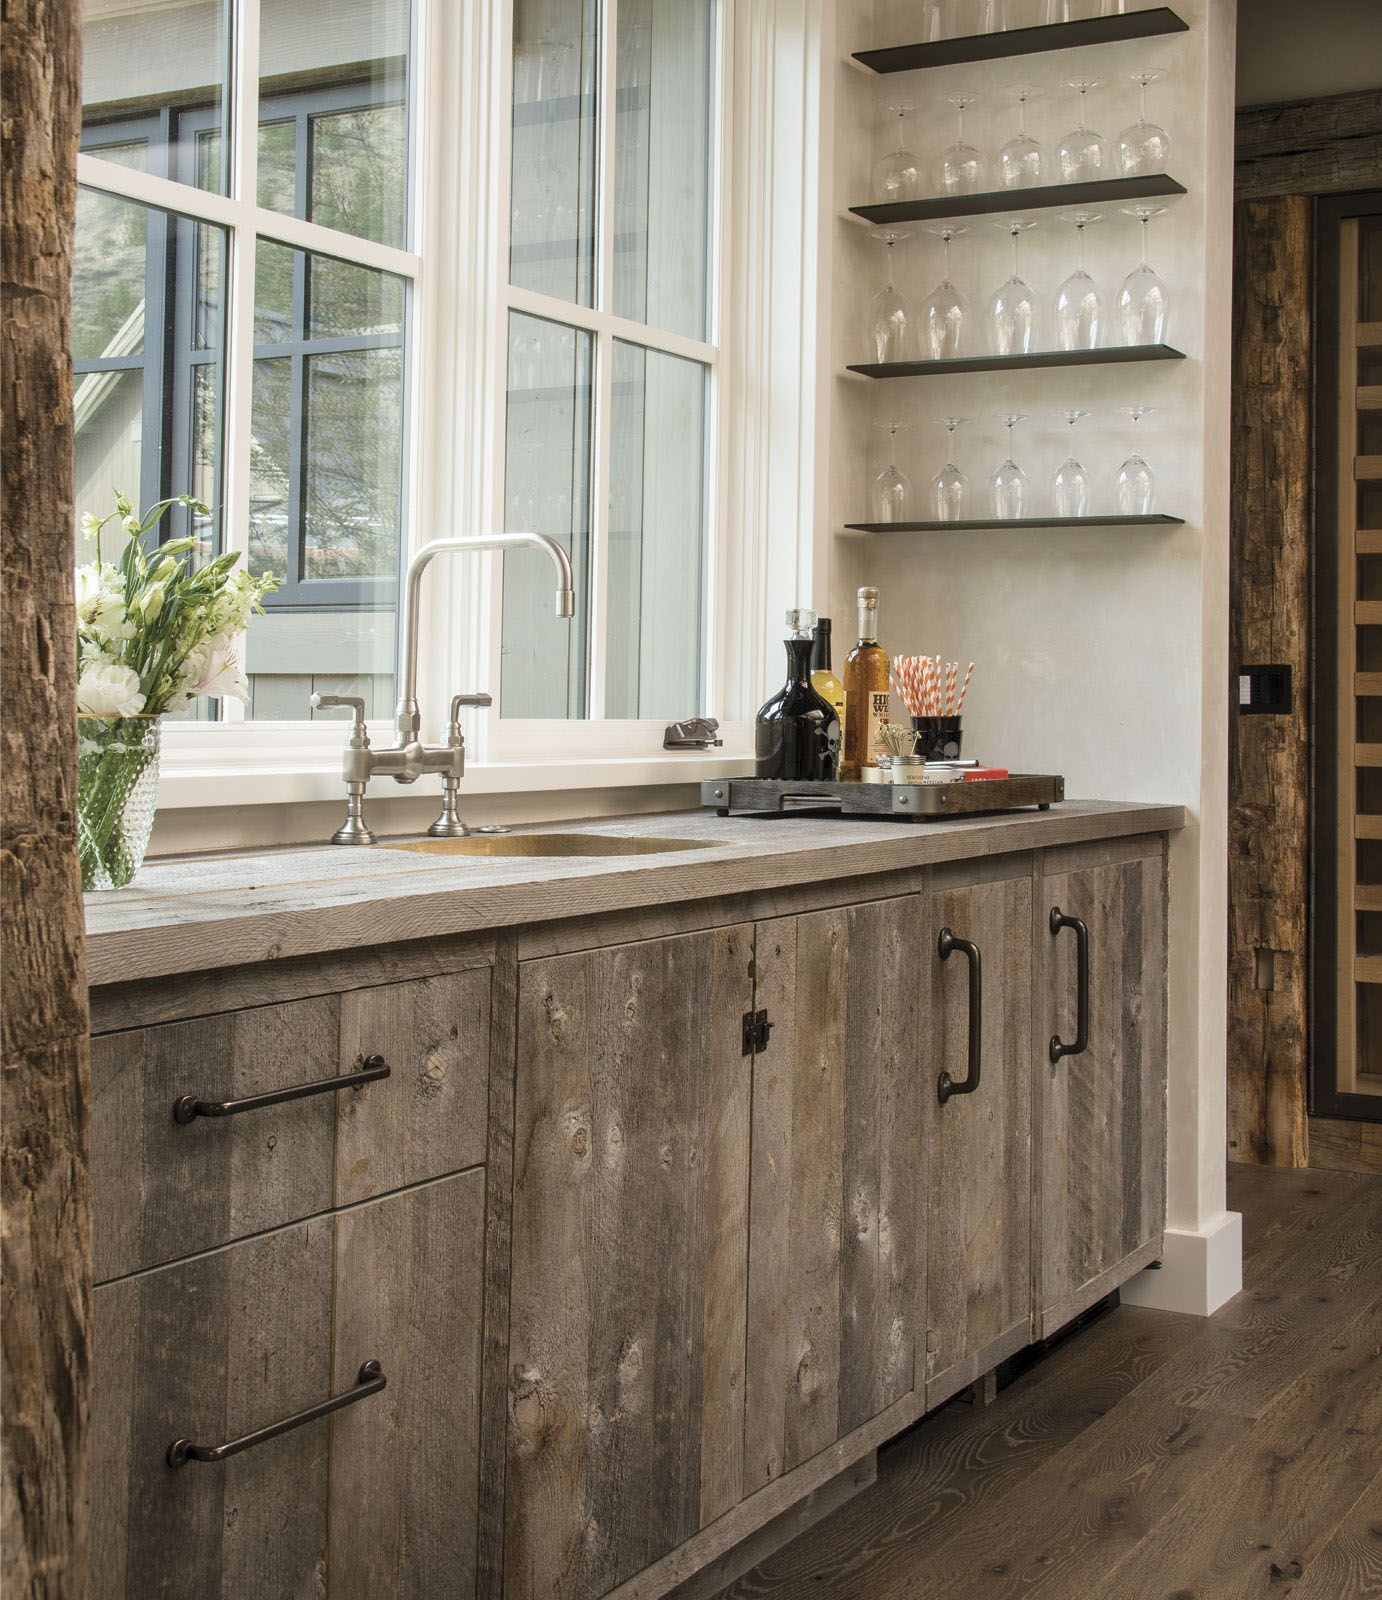 7874 Gallery Rustic New kitchen Home